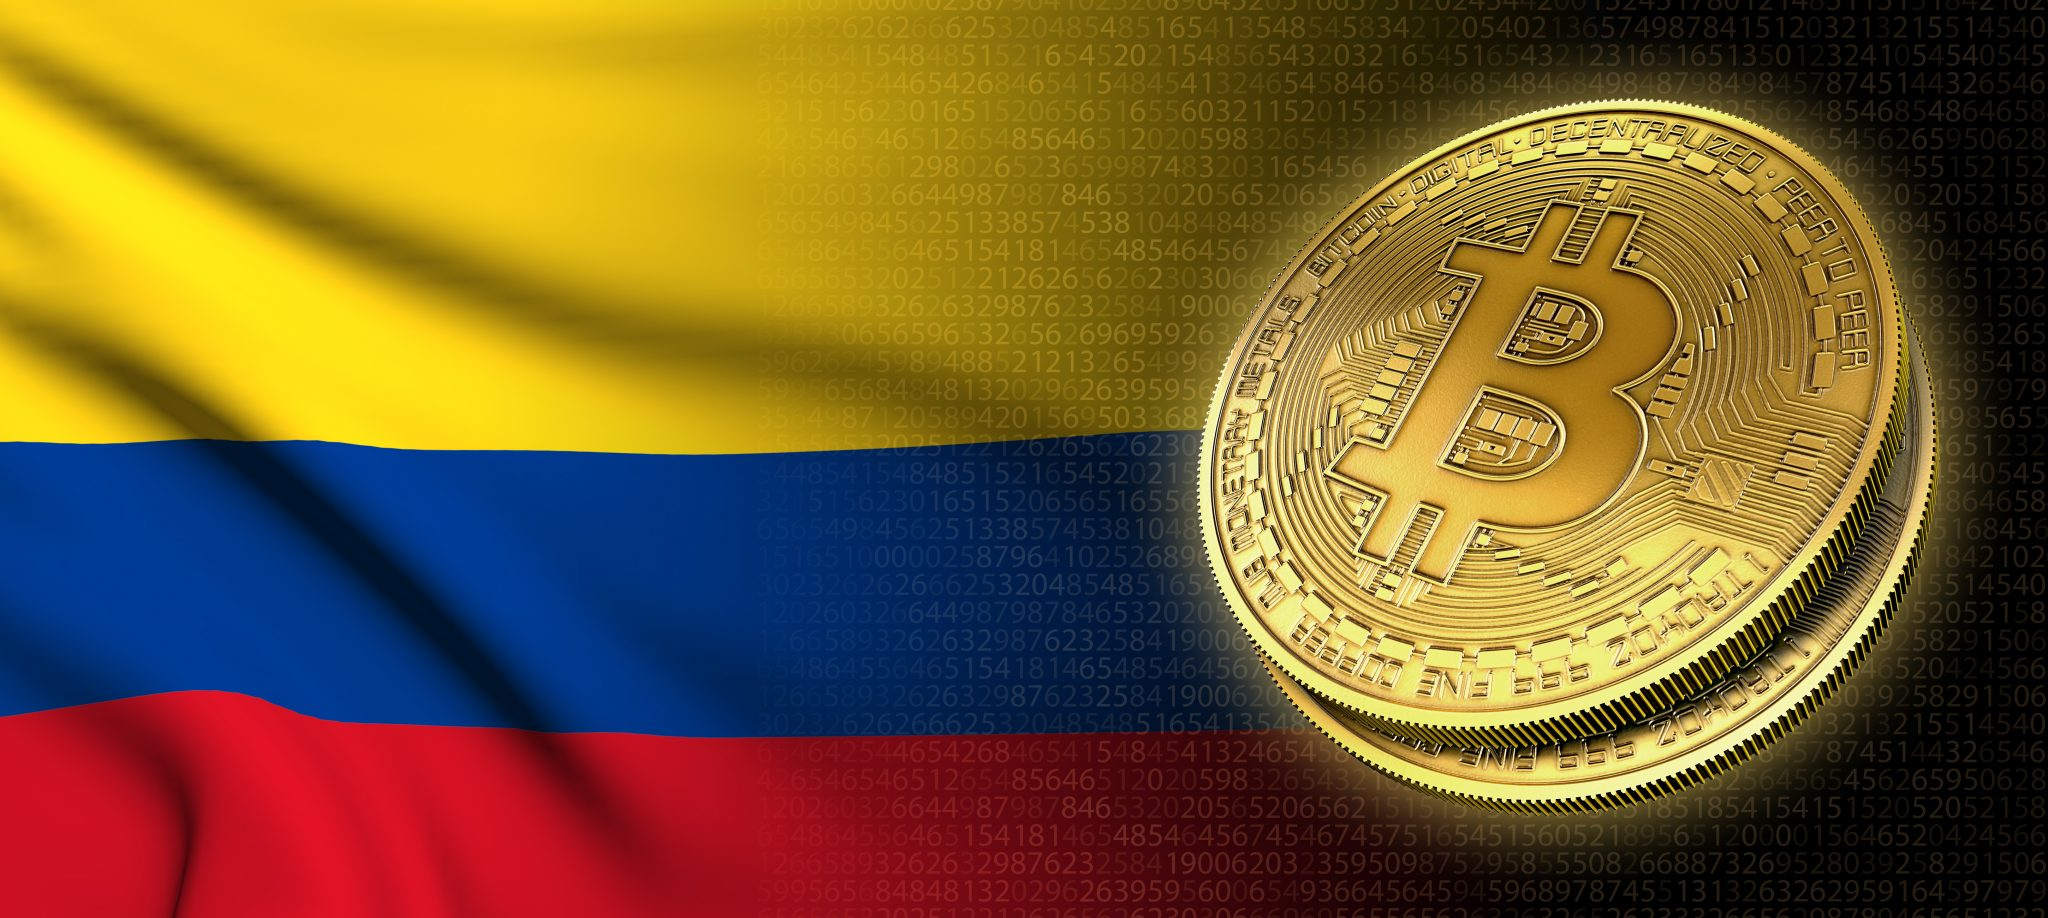 3D rendering: Bitcoin cryptocurrency coin with the national flag of Colombia, on a black background